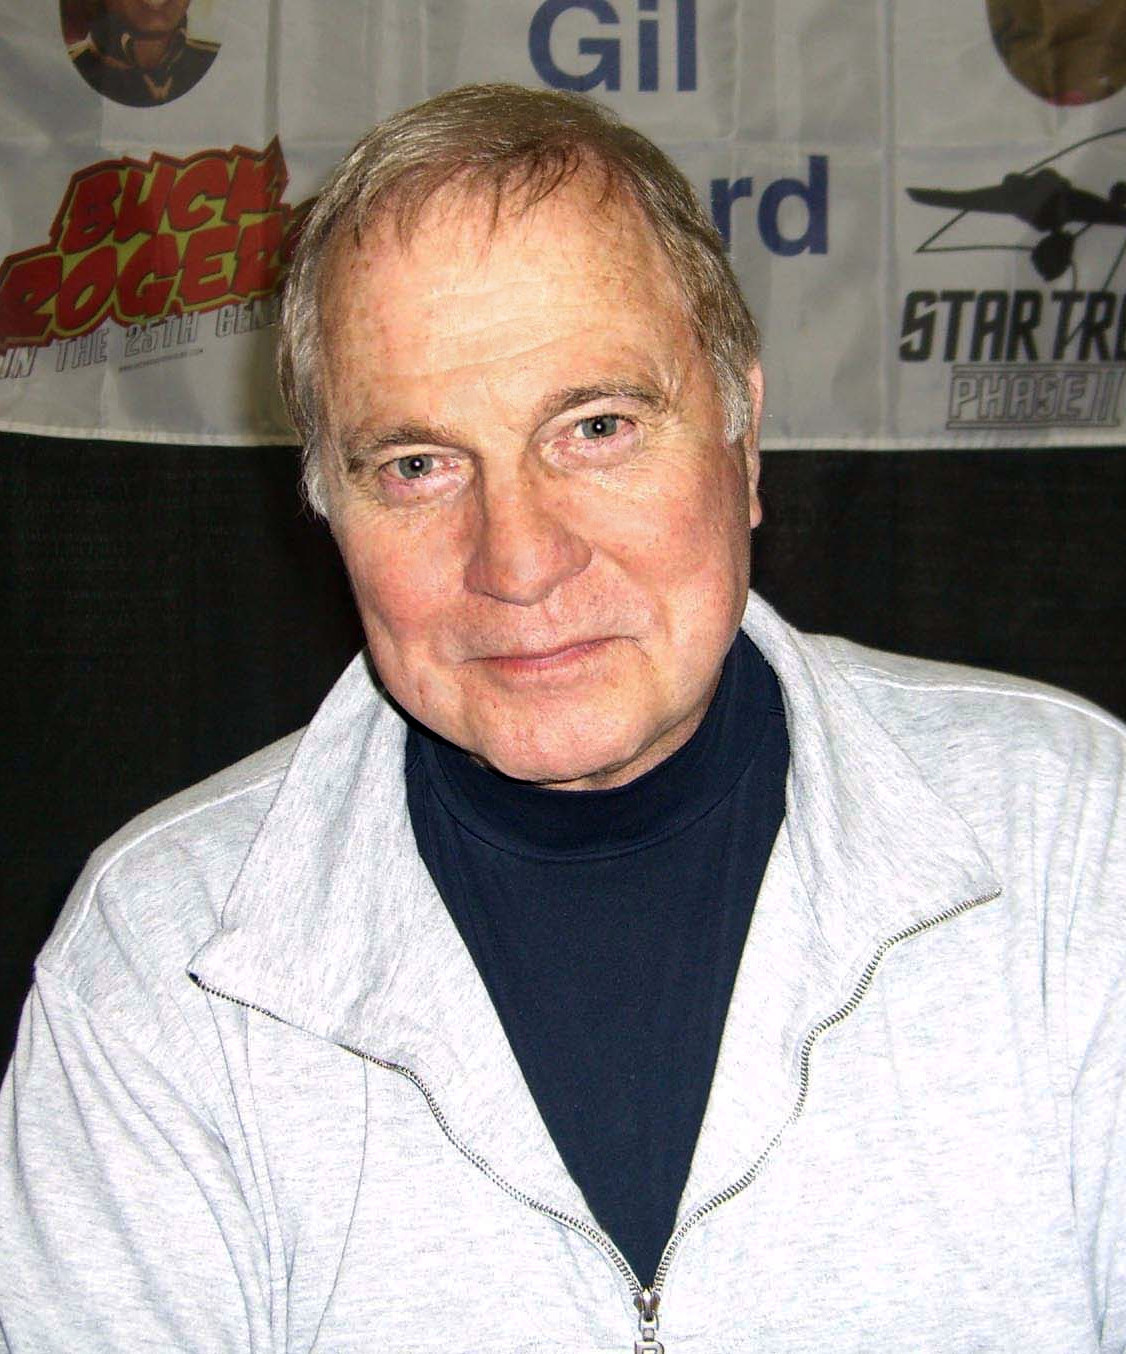 gil gerard family relationshipsgil gerard dancing, gil gerard, gil gerard net worth, gil gerard imdb, gil gerard and erin gray, gil gerard images, gil gerard buck rogers, gil gerard connie sellecca, gil gerard movies and tv shows, gil gerard family relationships, gil gerard son, gil gerard gastric bypass, gil gerard shirtless, gil gerard little house on the prairie, gil gerard photos, gil gerard fat, gil gerard height